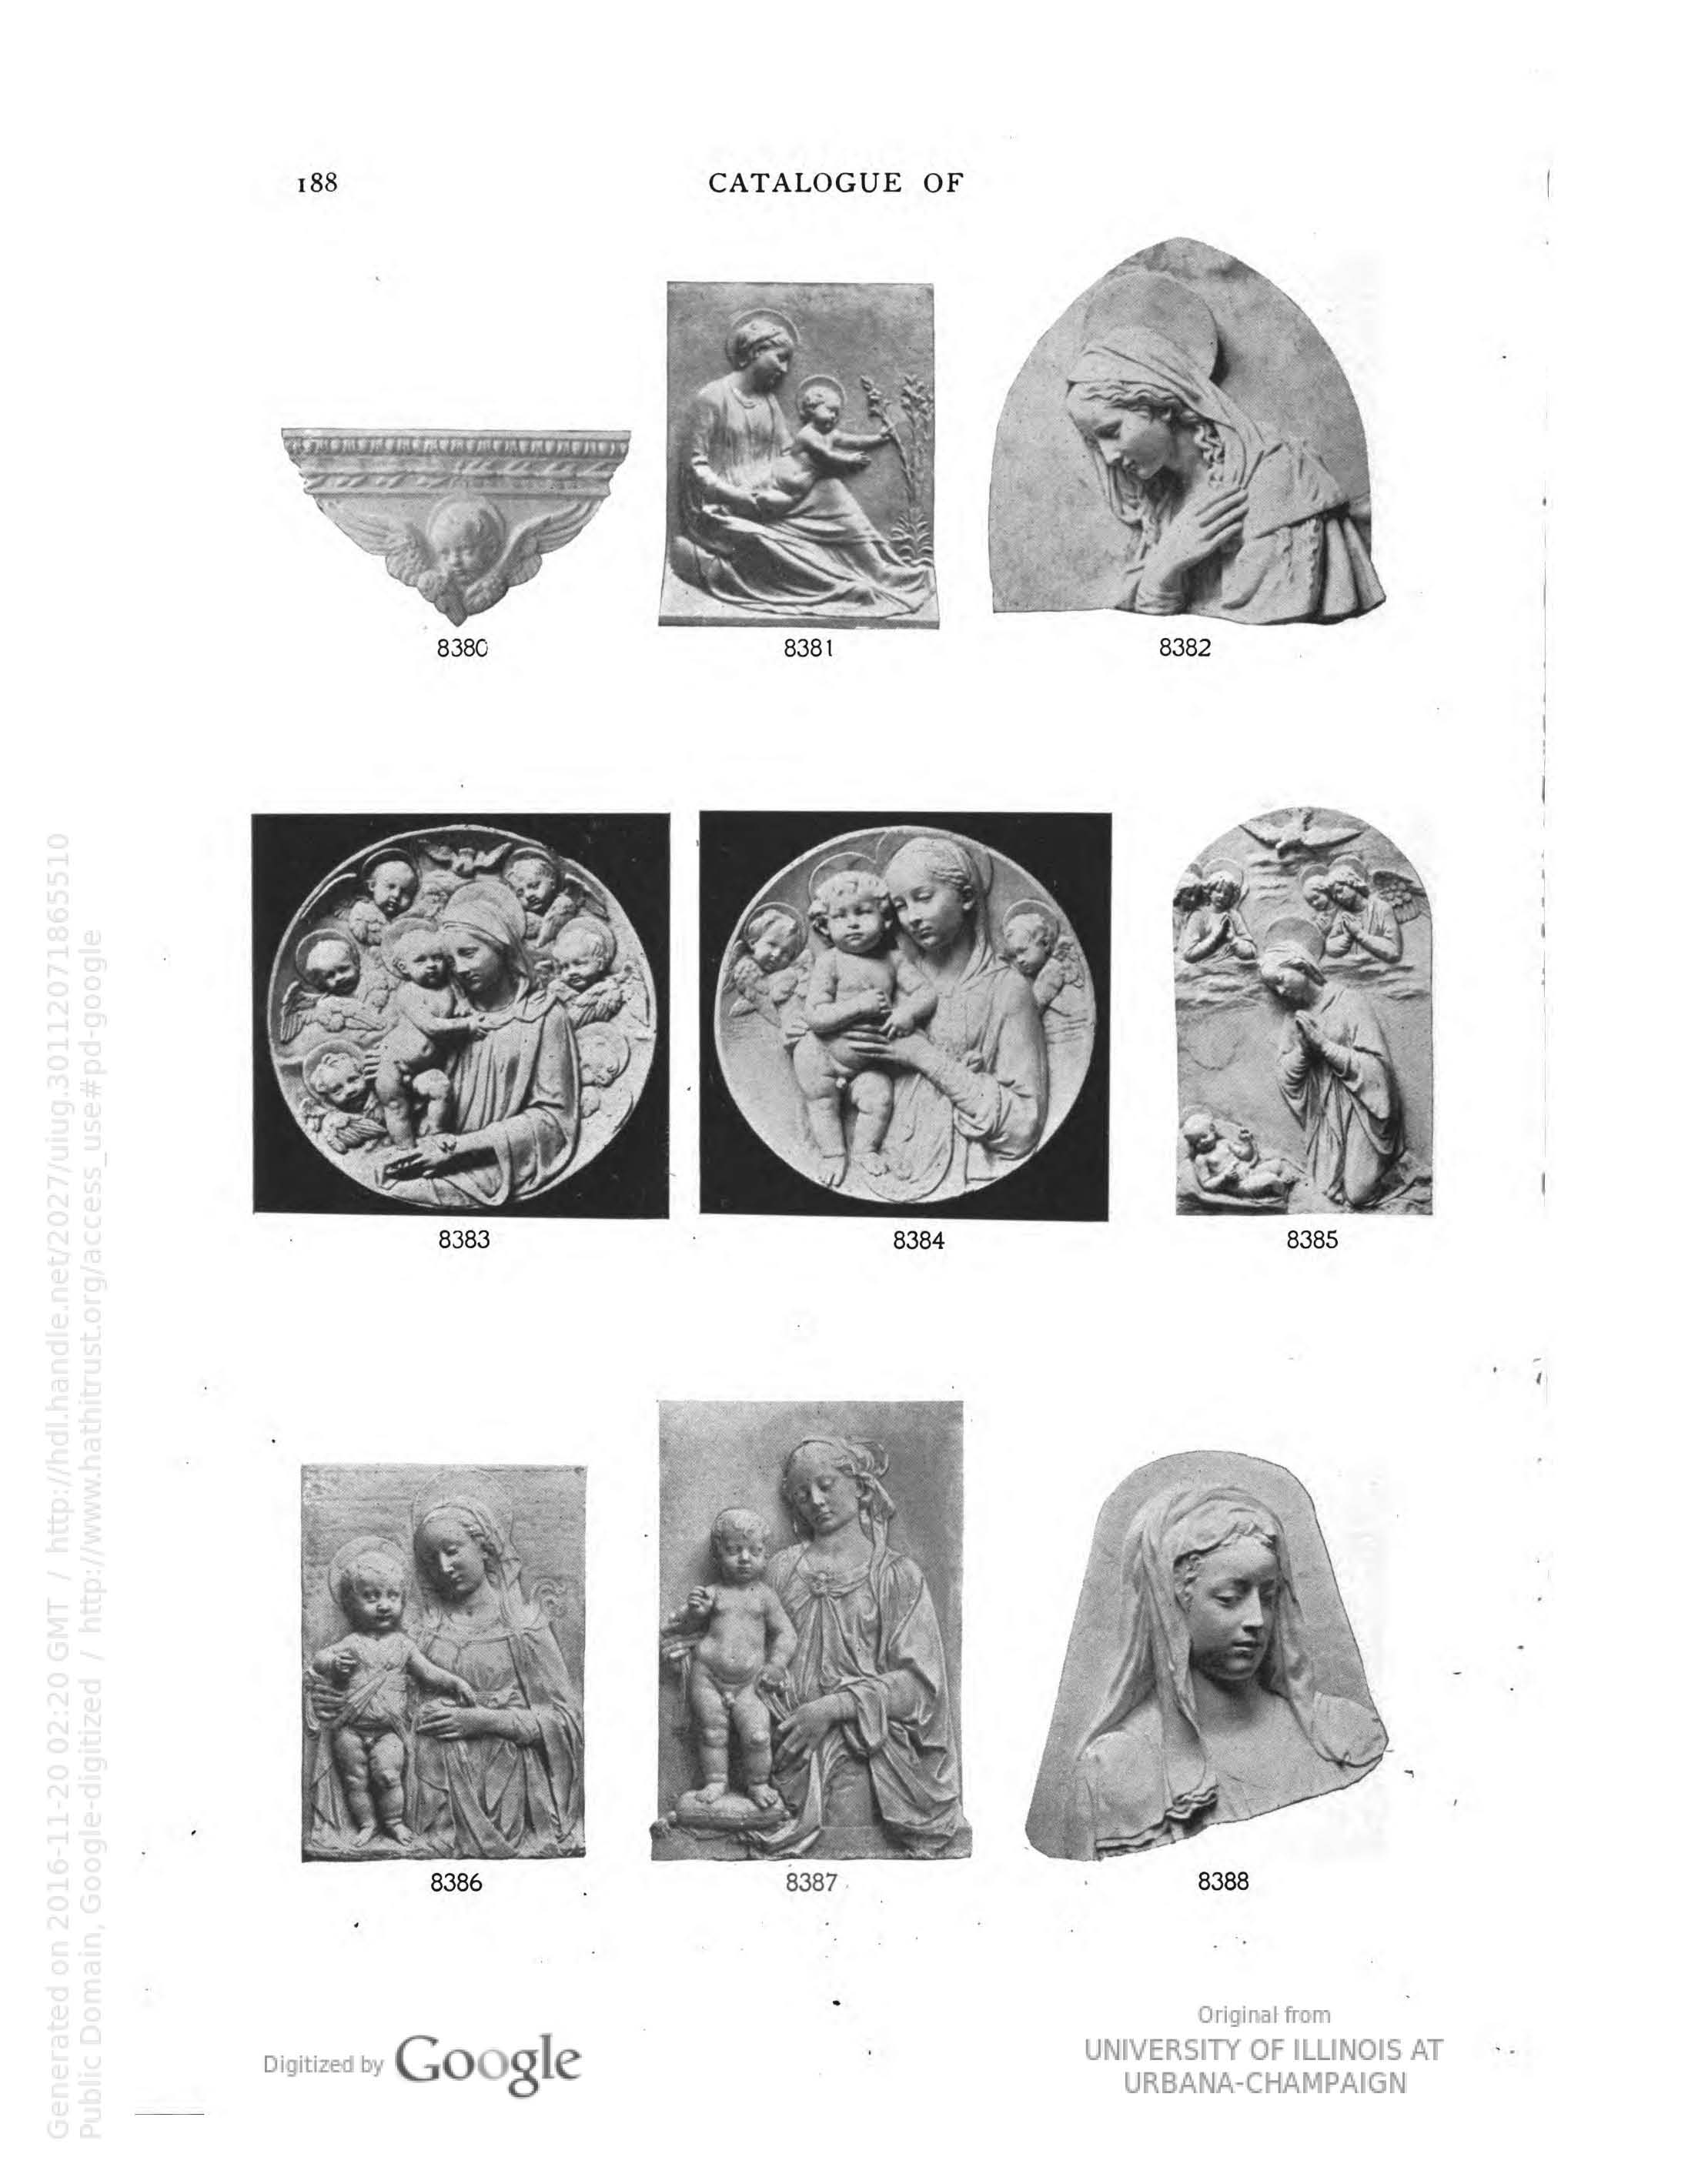 Cast no. 8284 from Catalogue of Plaster Casts of Ancient, Medieval and Modern Sculpture: Subjects for art School (Boston: P.P. Caproni & Brother, 1901), p. 188.